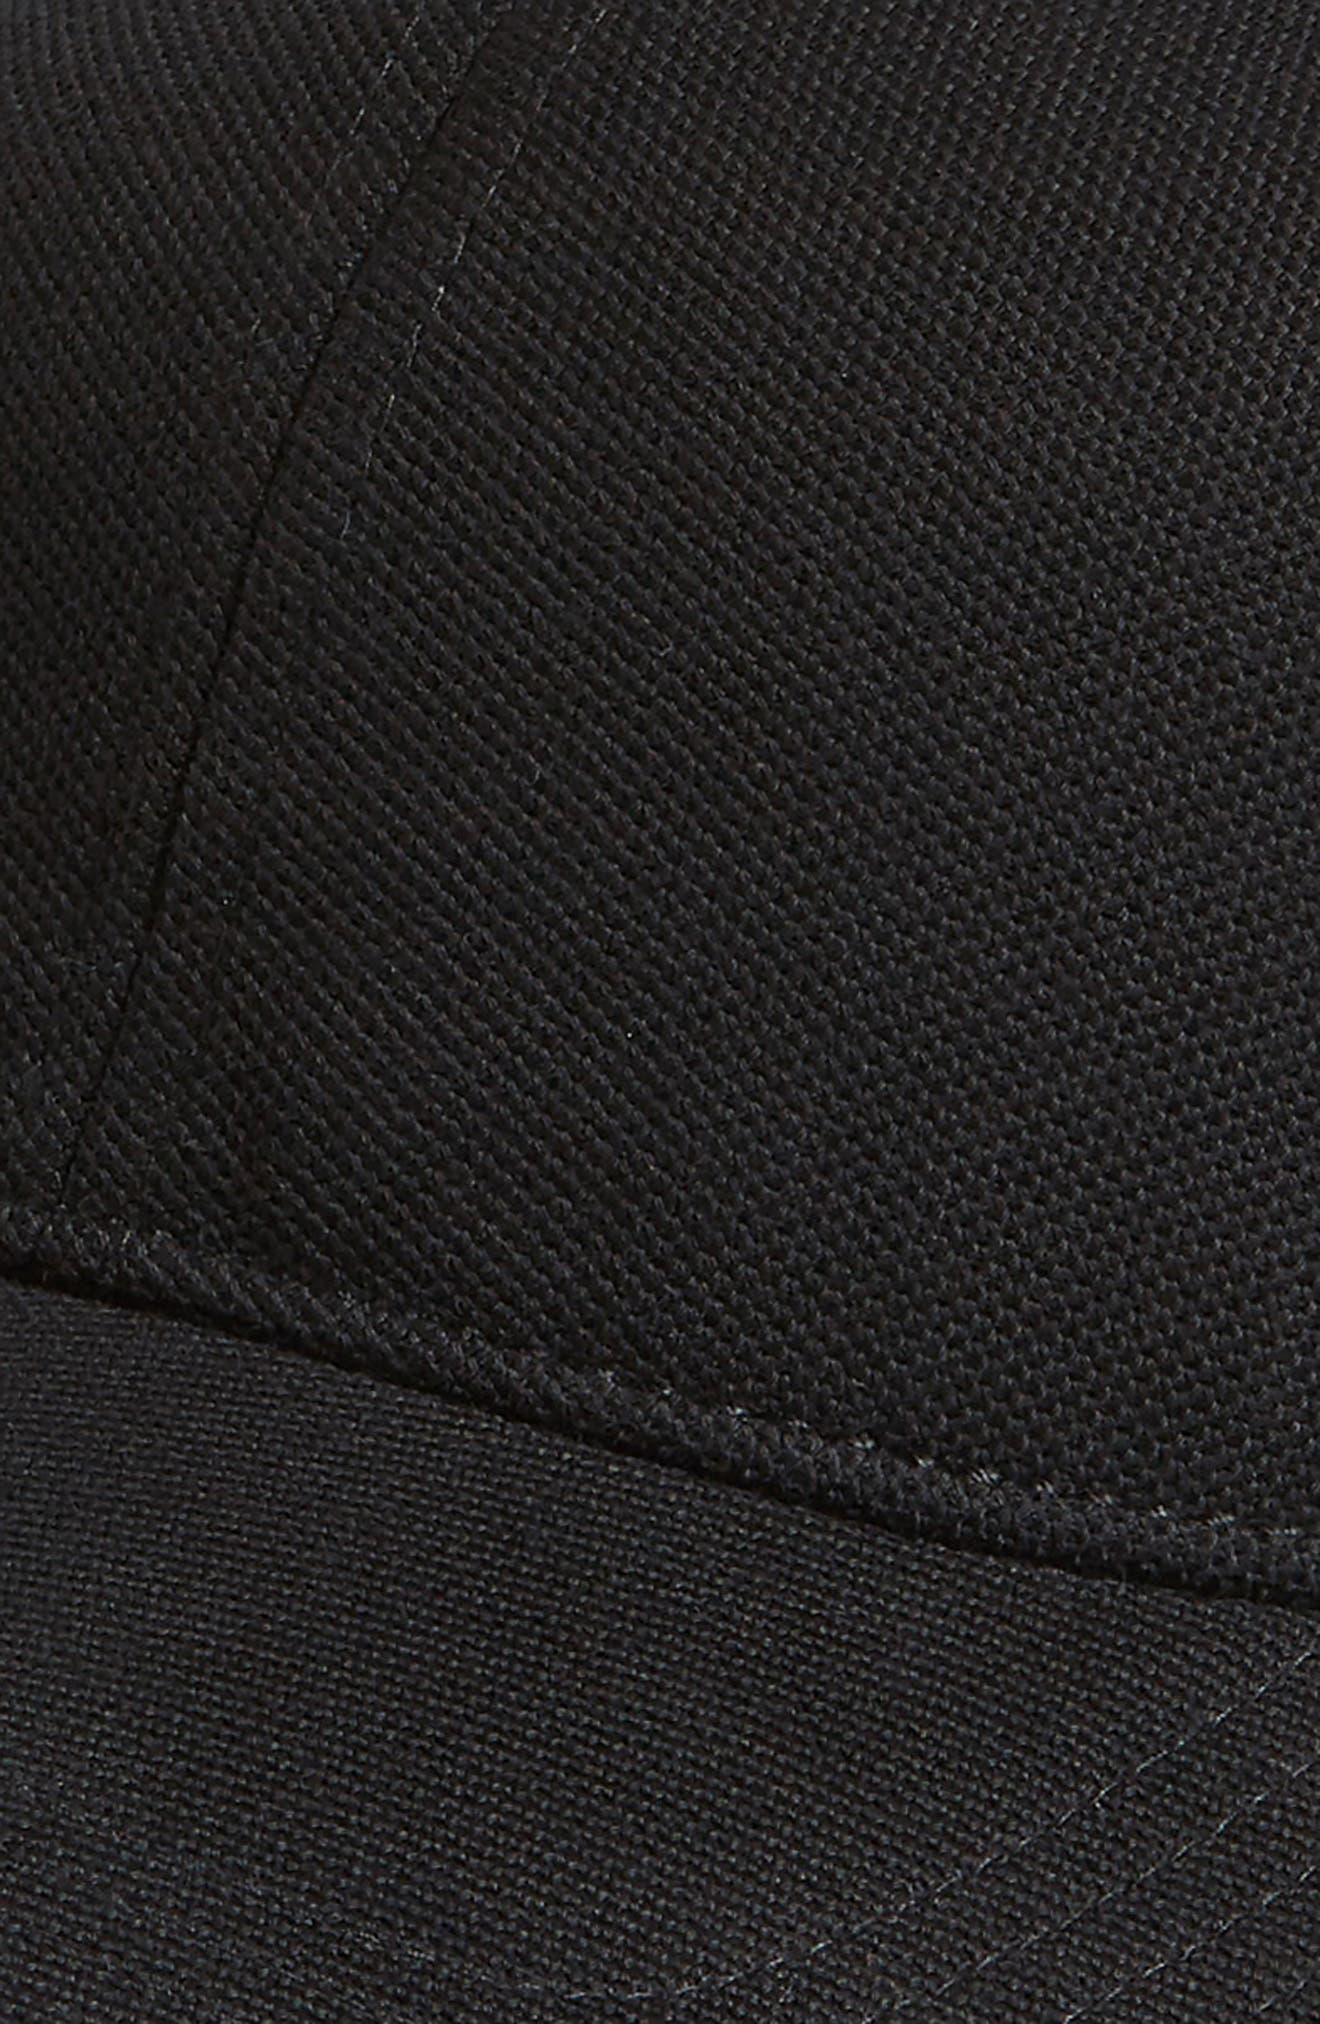 Croc Cotton Baseball Cap,                             Alternate thumbnail 3, color,                             001